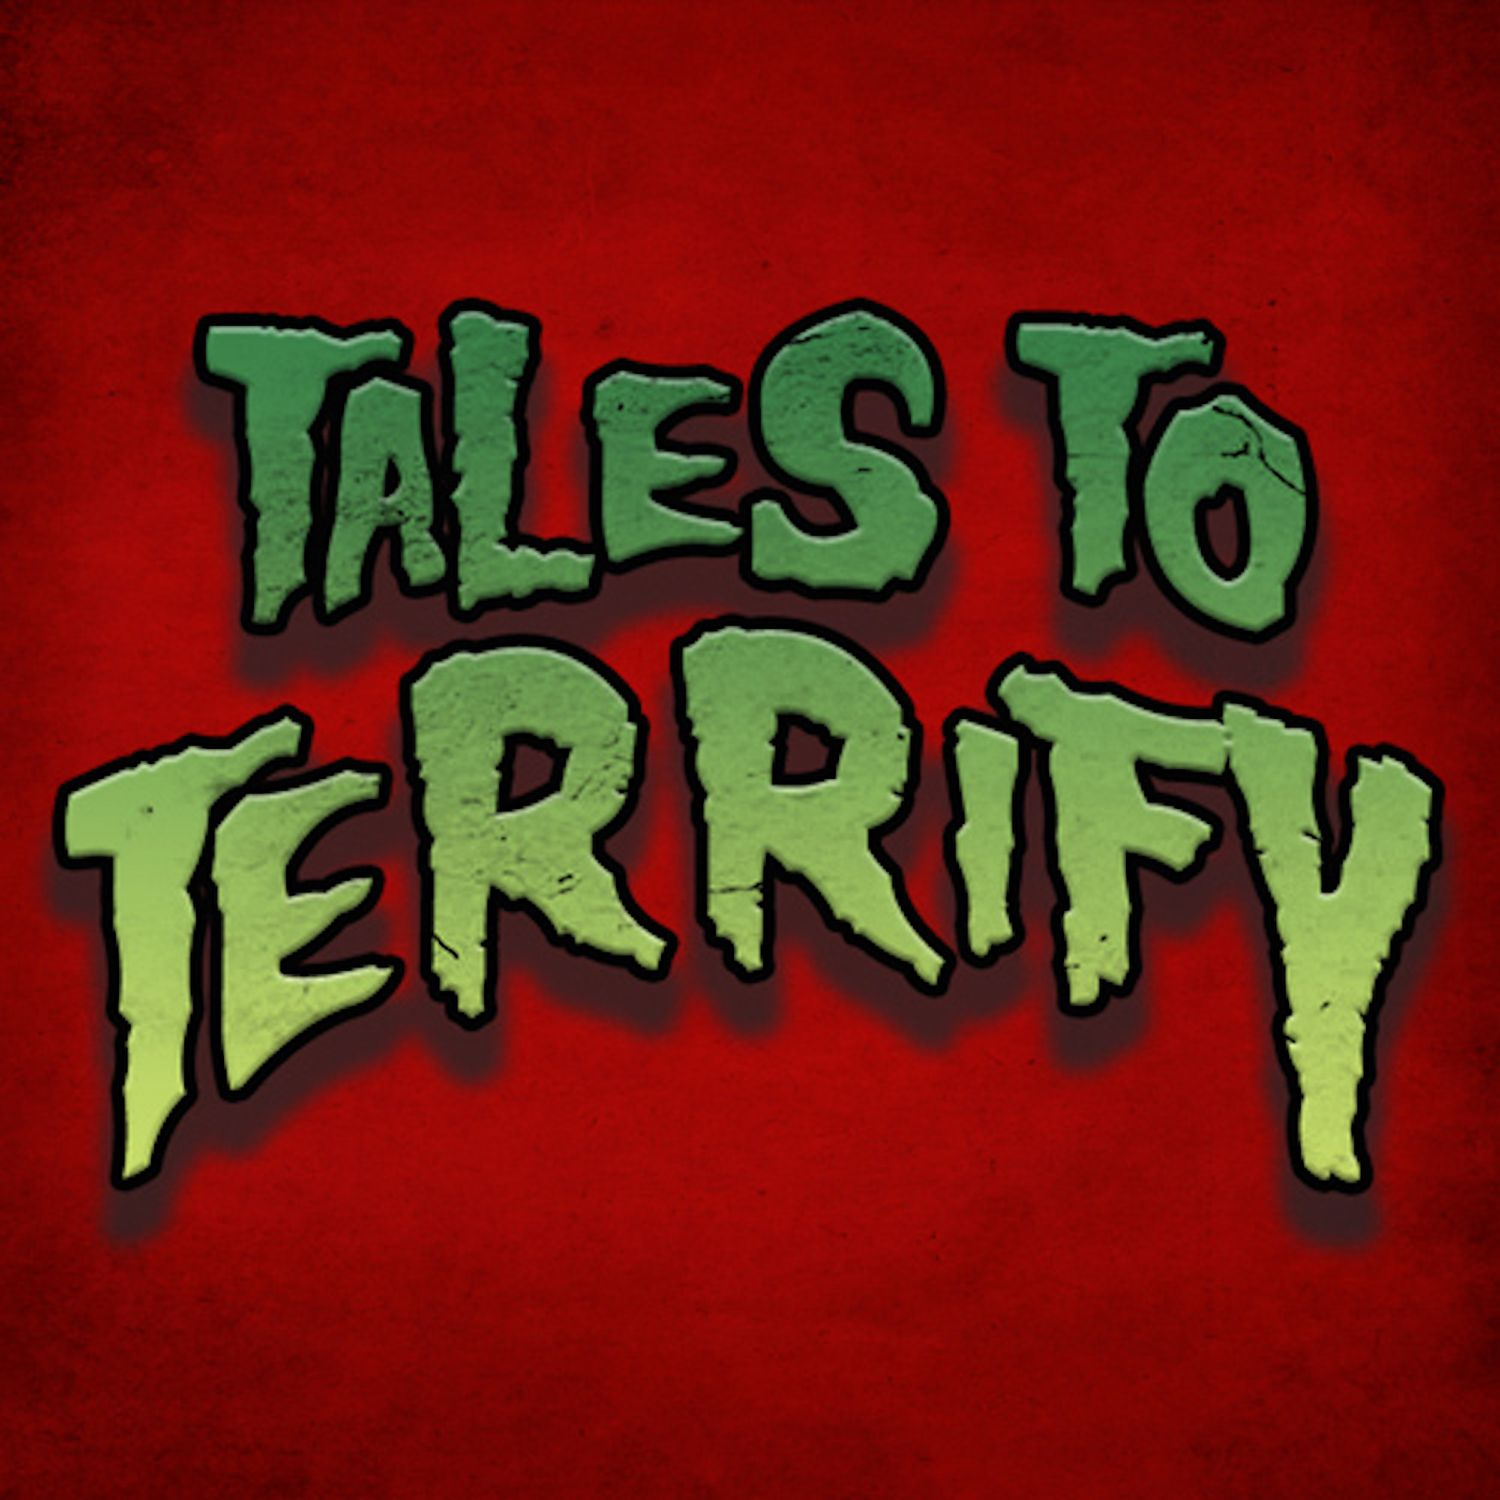 Tales to Terrify 339 Nate Southard W. W. Jacobs